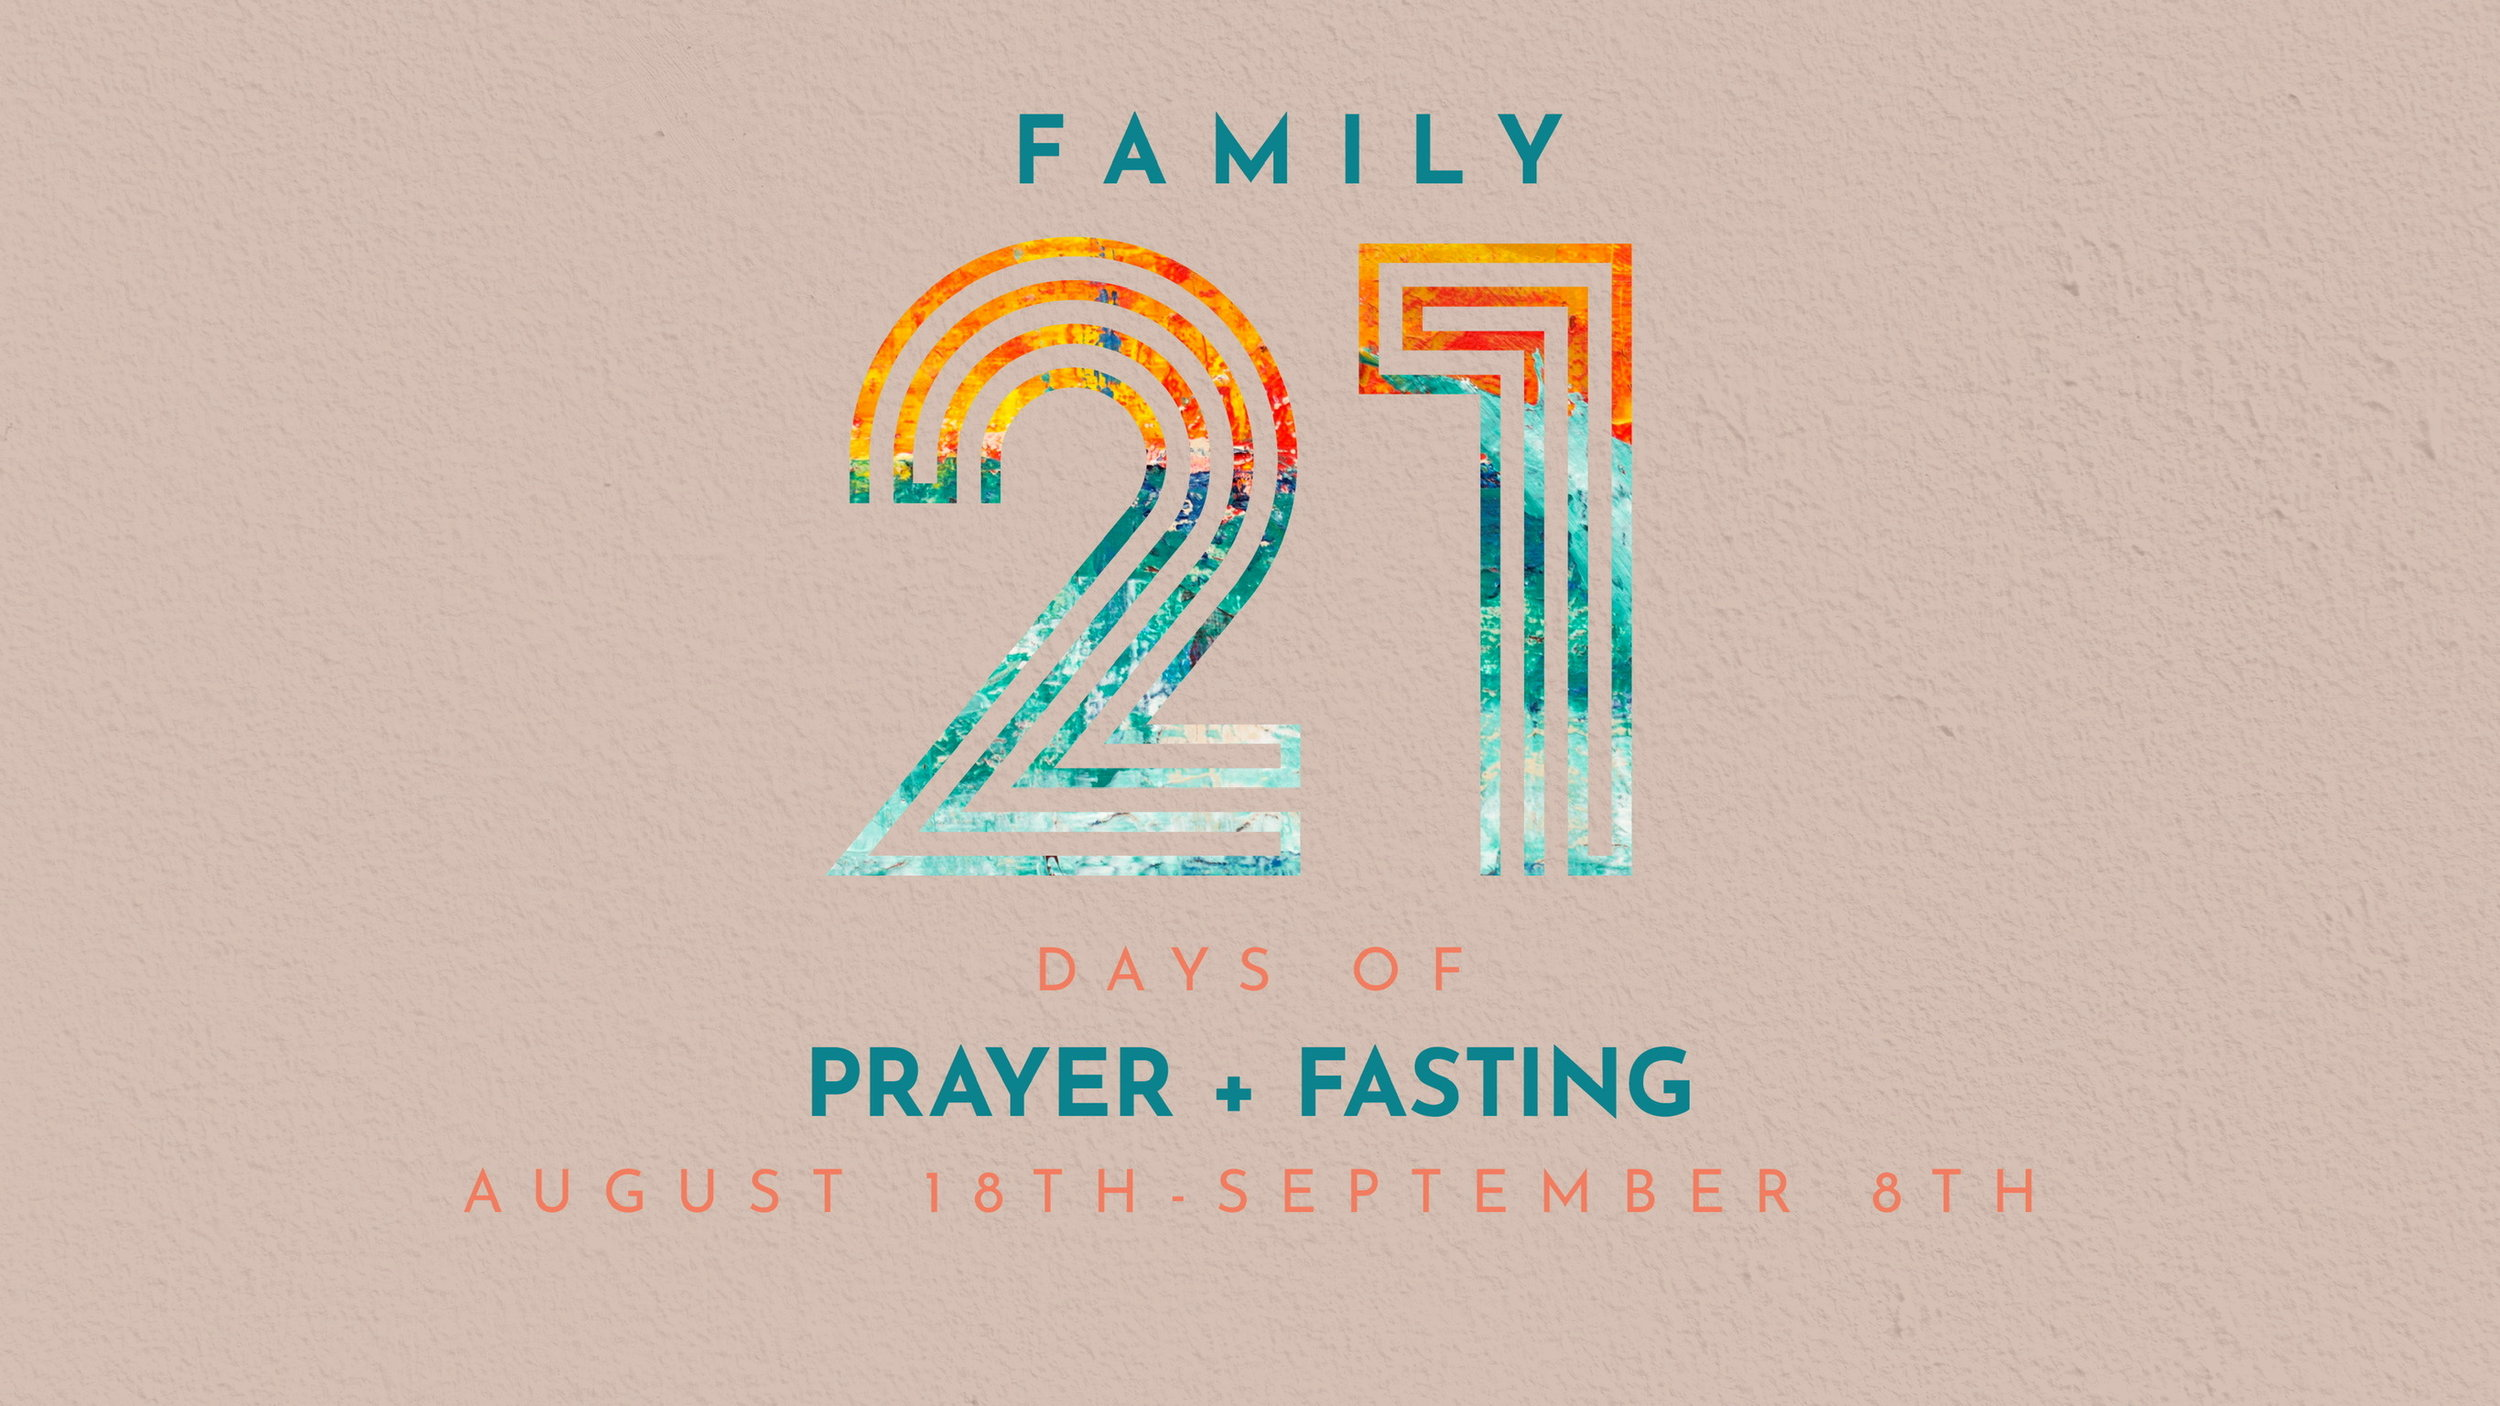 CHURCH-WIDE FAST - We begin our Family Fast on August 18th. This is a time to seek God and believe God for the remainder of the year.